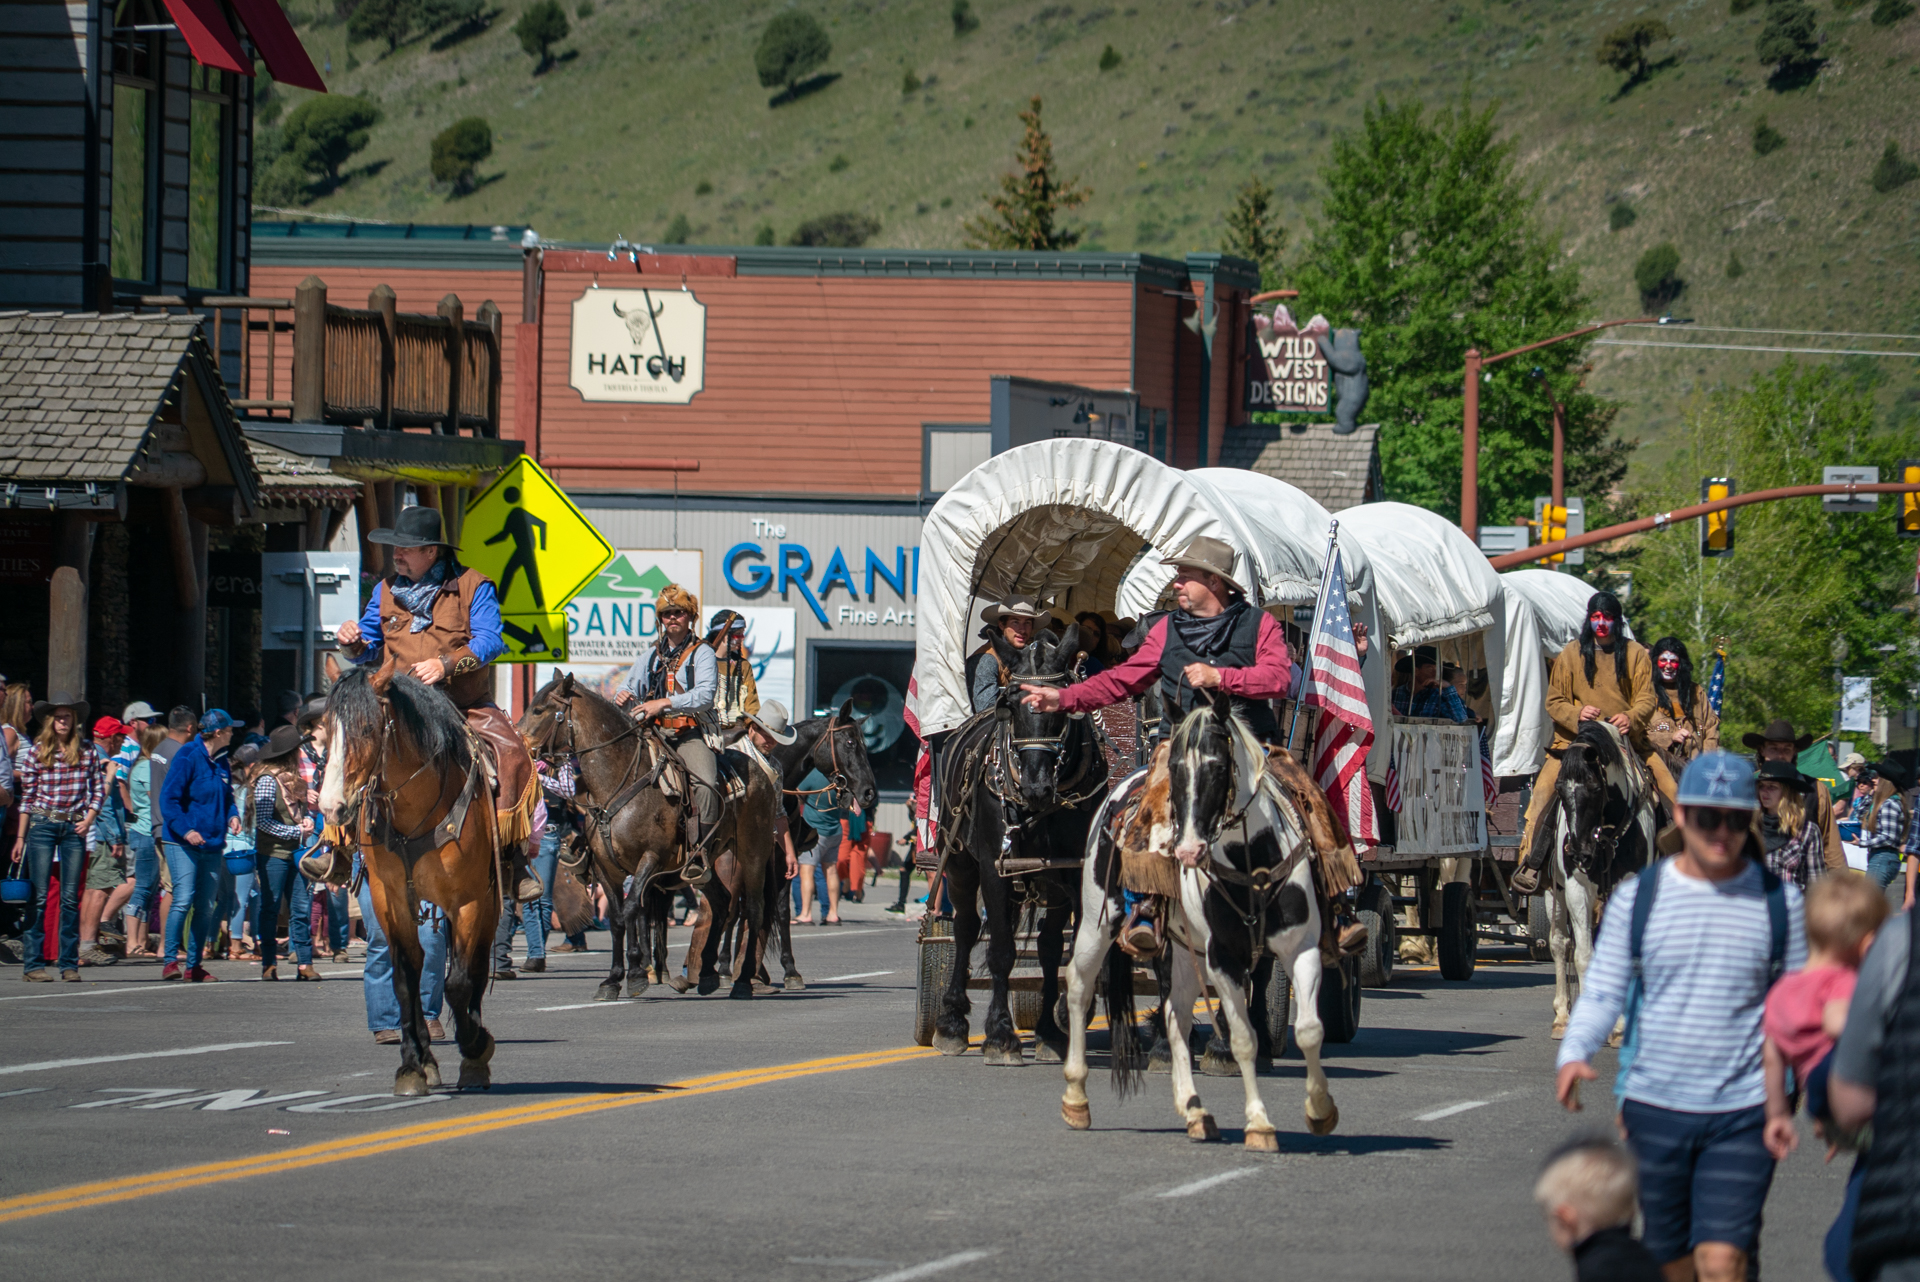 One of the fun things to do in Wyoming is catch a parade or event in Jackson Hole